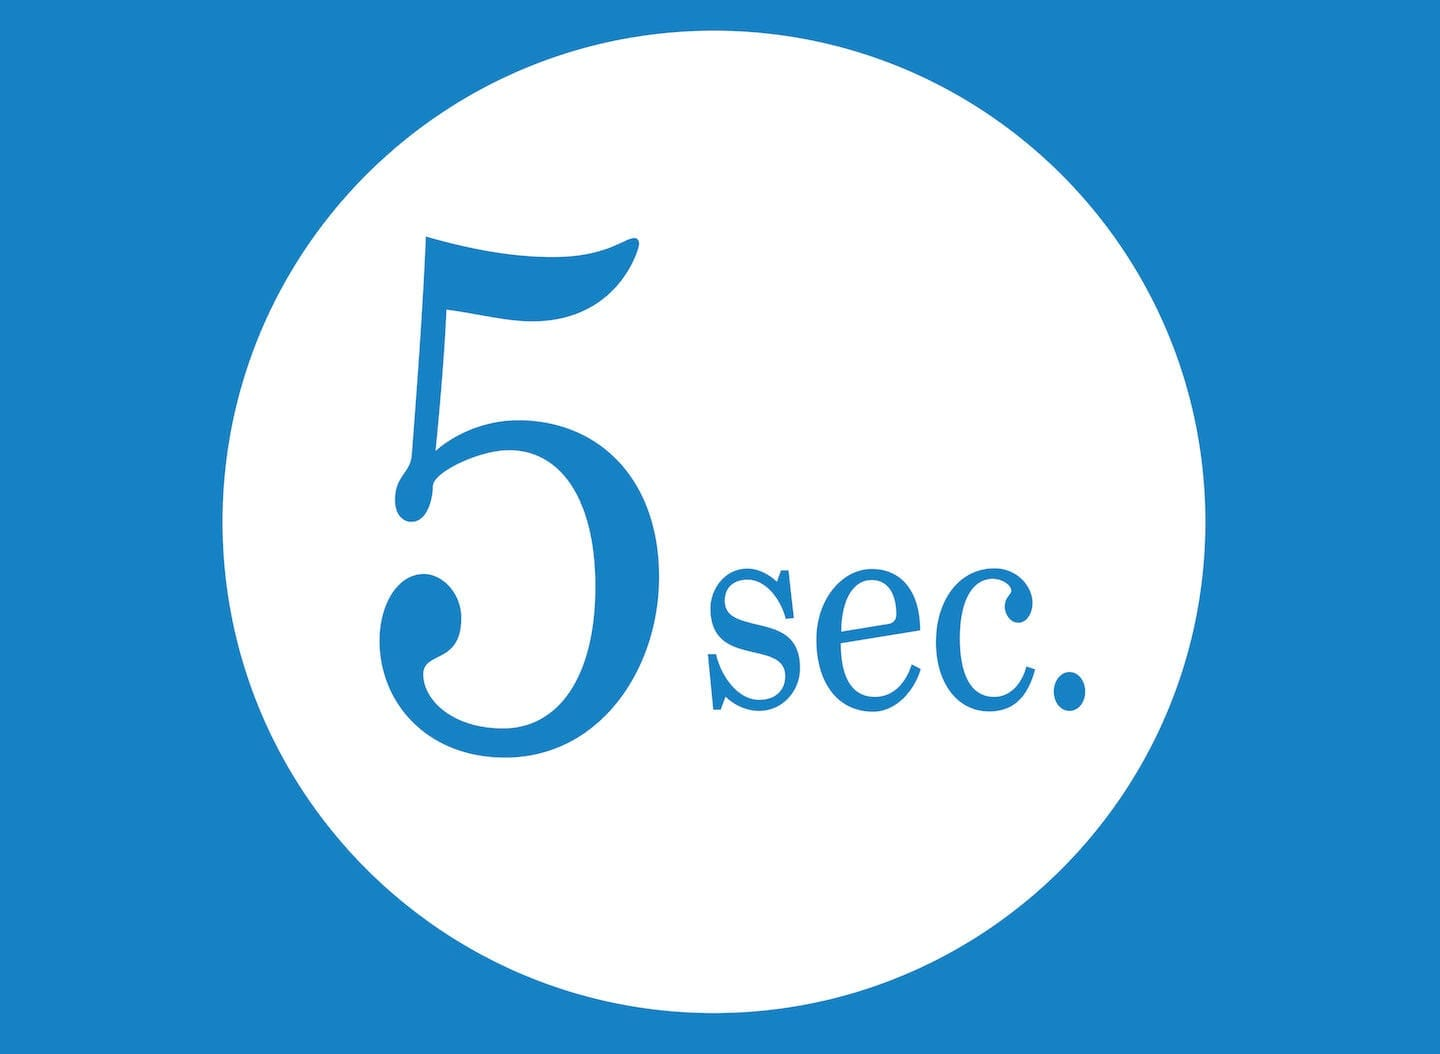 5 seconds web design